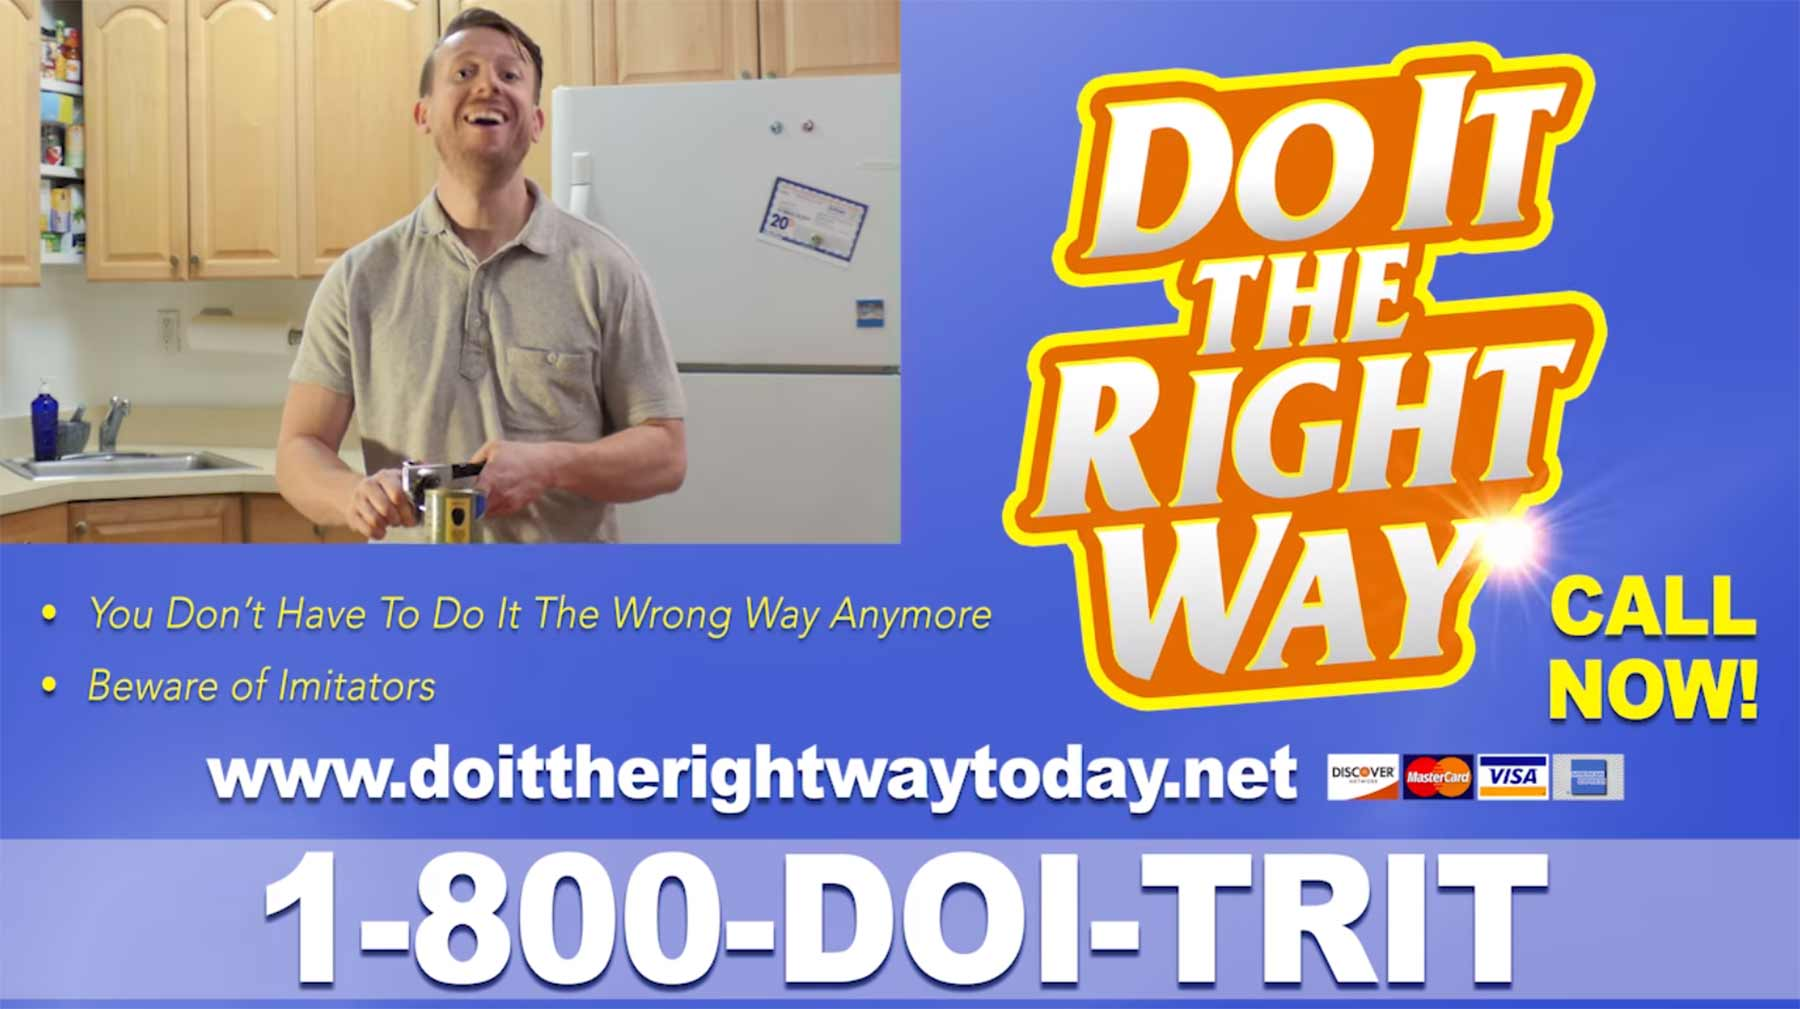 Schluss mit Infomercial-Alltagsproblemen do-it-the-right-way